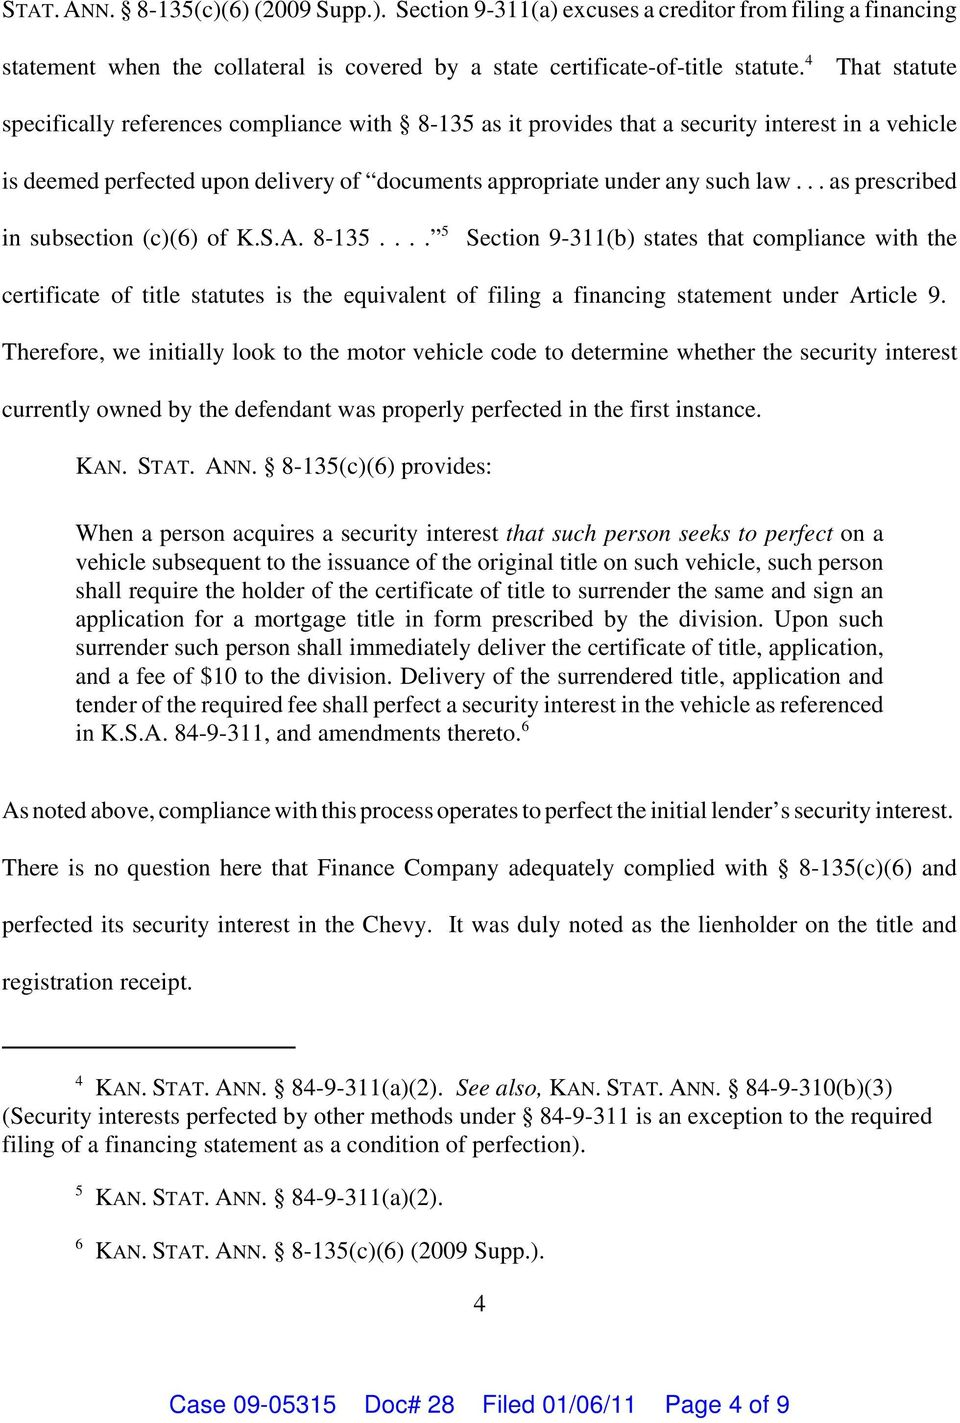 .. as prescribed in subsection (c(6 of K.S.A. 8-135.... 5 Section 9-311(b states that compliance with the certificate of title statutes is the equivalent of filing a financing statement under Article 9.